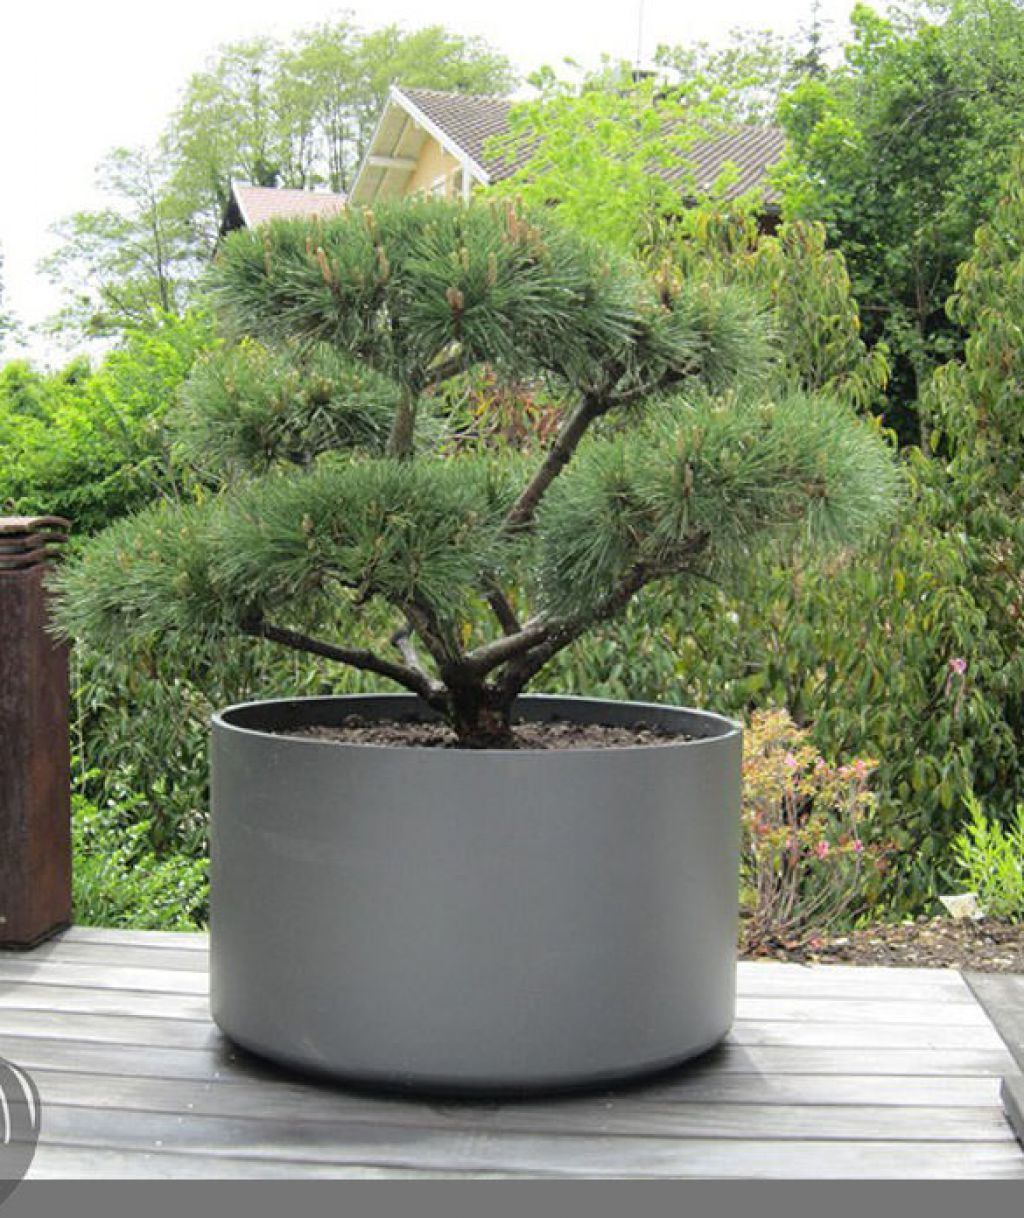 Extra Large Round Outdoor Planter Pot For Bonsai Tree Or Spruces Creating Modern Style And Appeal To Y Planter Pots Outdoor Large Plant Pots Outdoor Planters